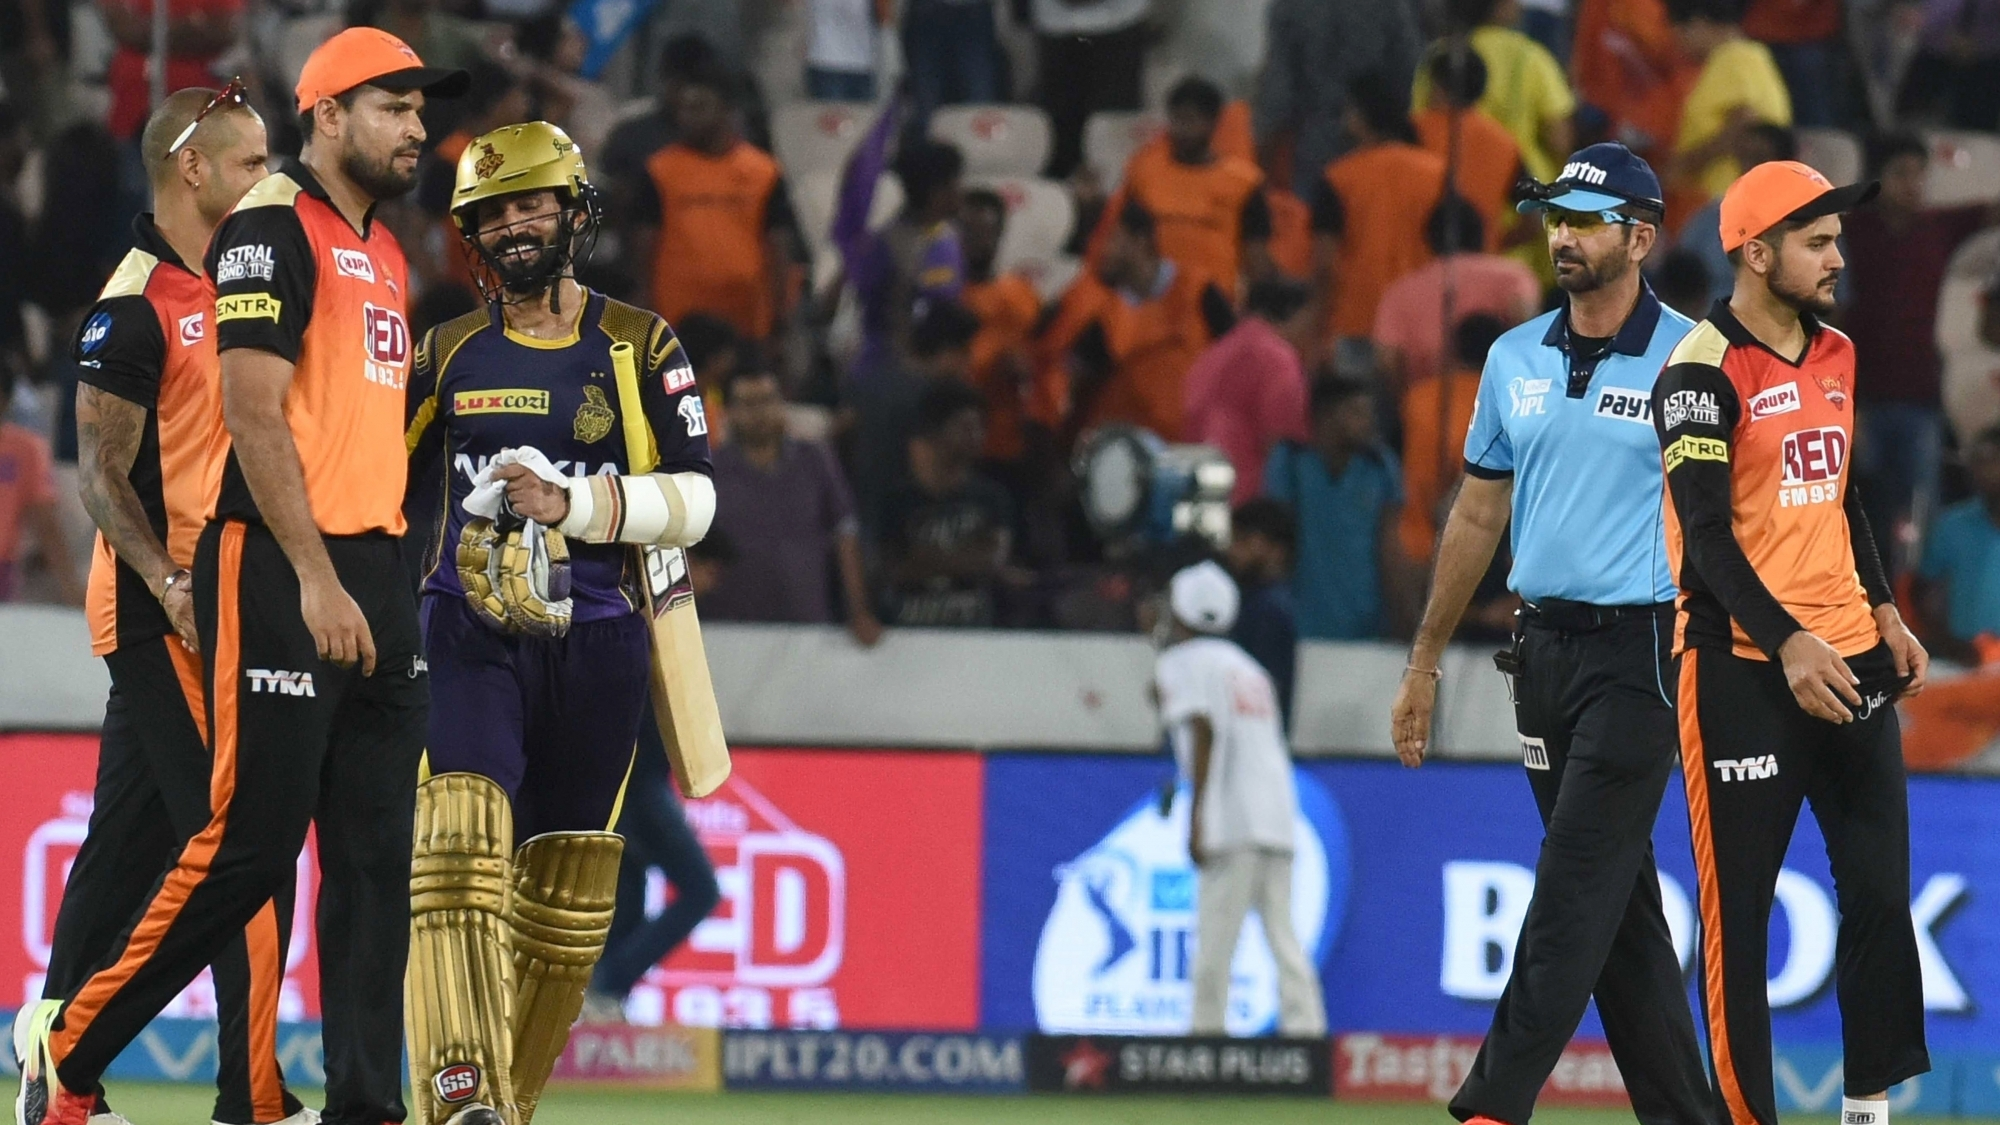 IPL 2018 : Match 54, SRH vs KKR - Statistical Highlights